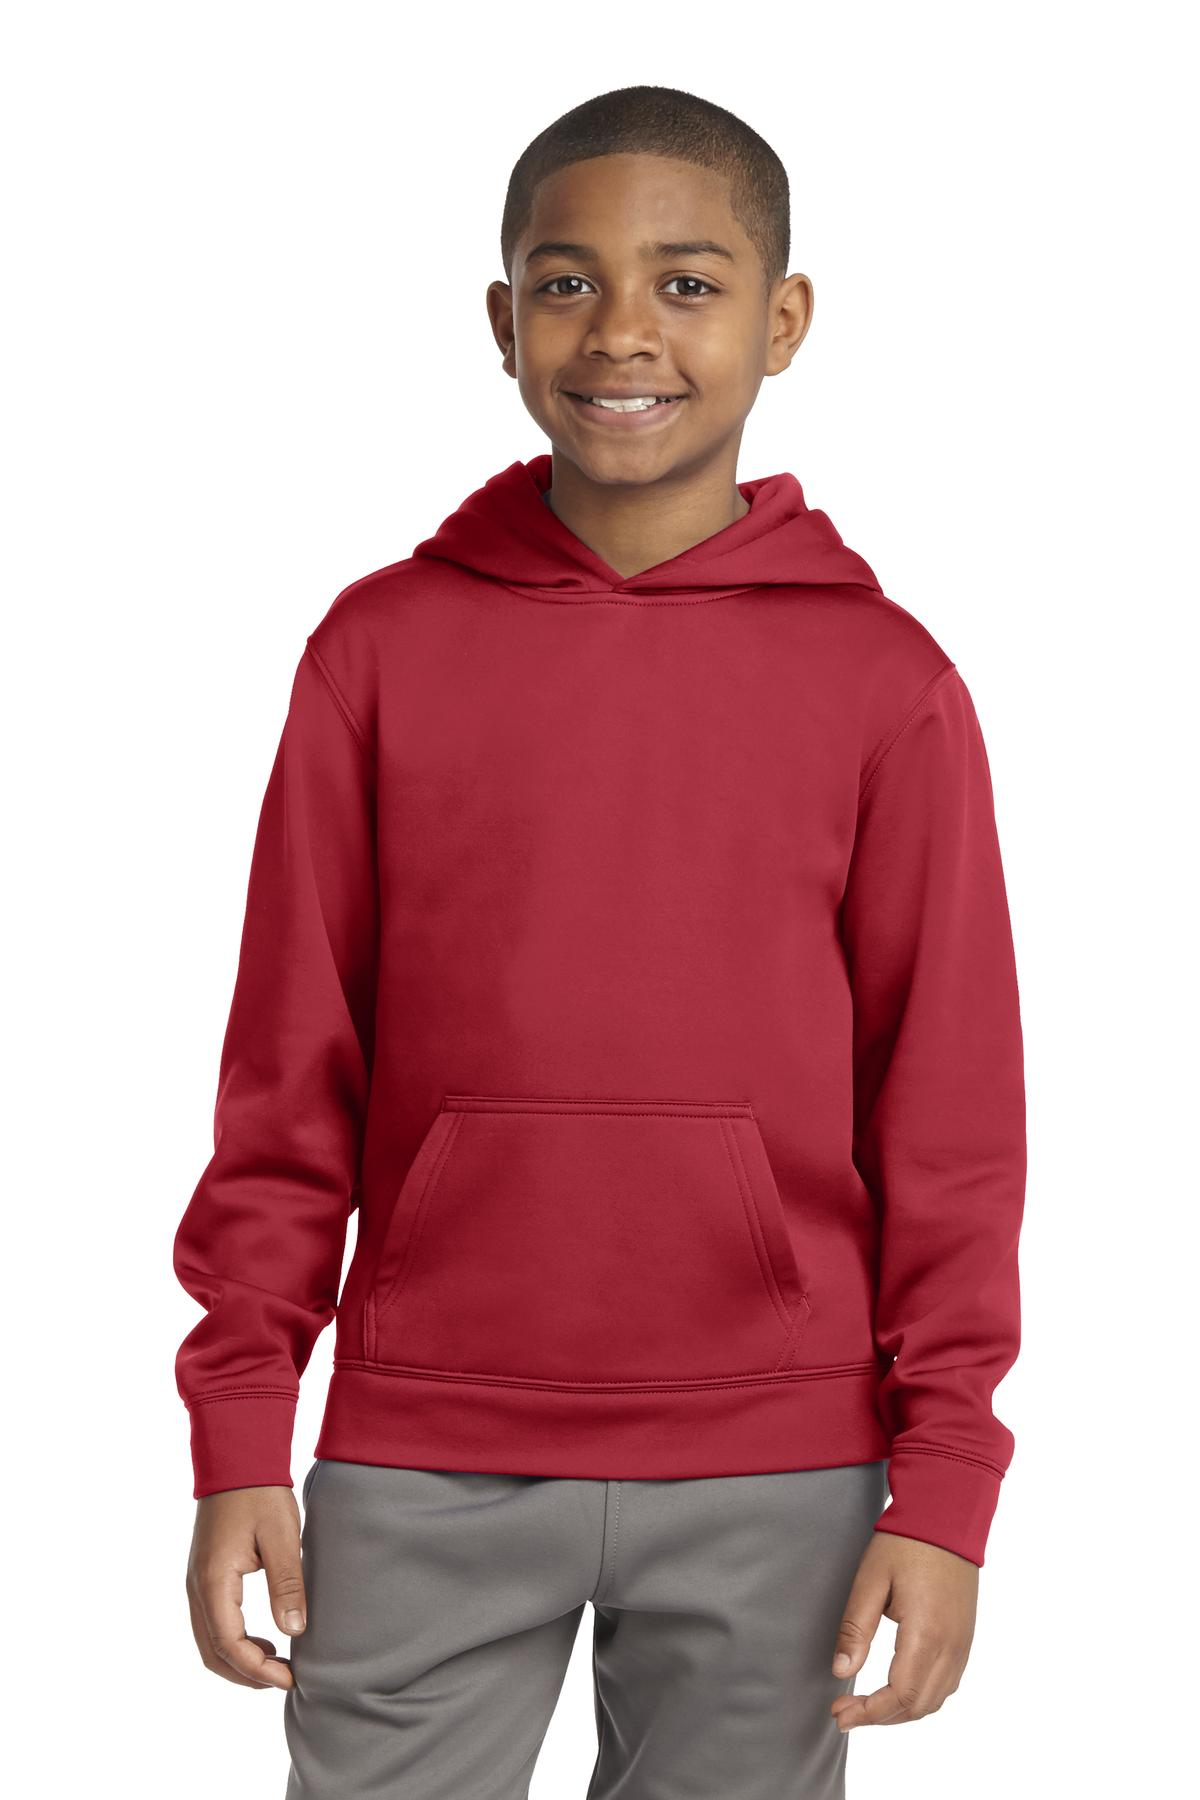 Sport-Tek ®  Youth Sport-Wick ®  Fleece Hooded Pullover. YST244 - Deep Red